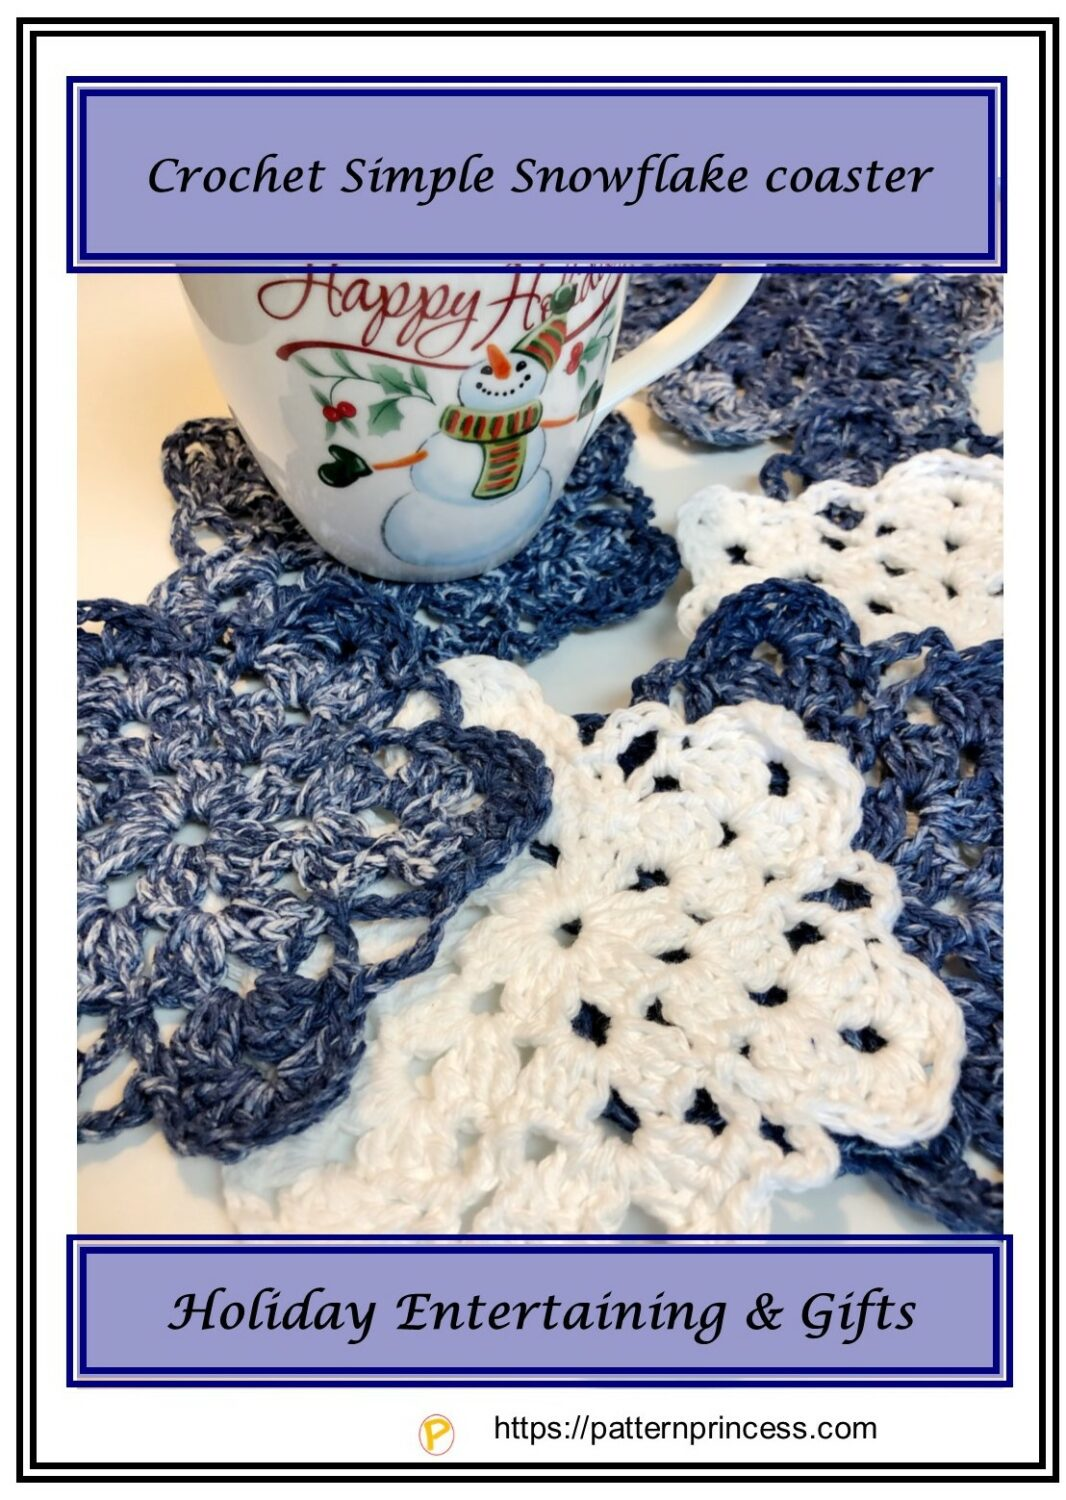 Crochet Simple Snowflake coaster 1